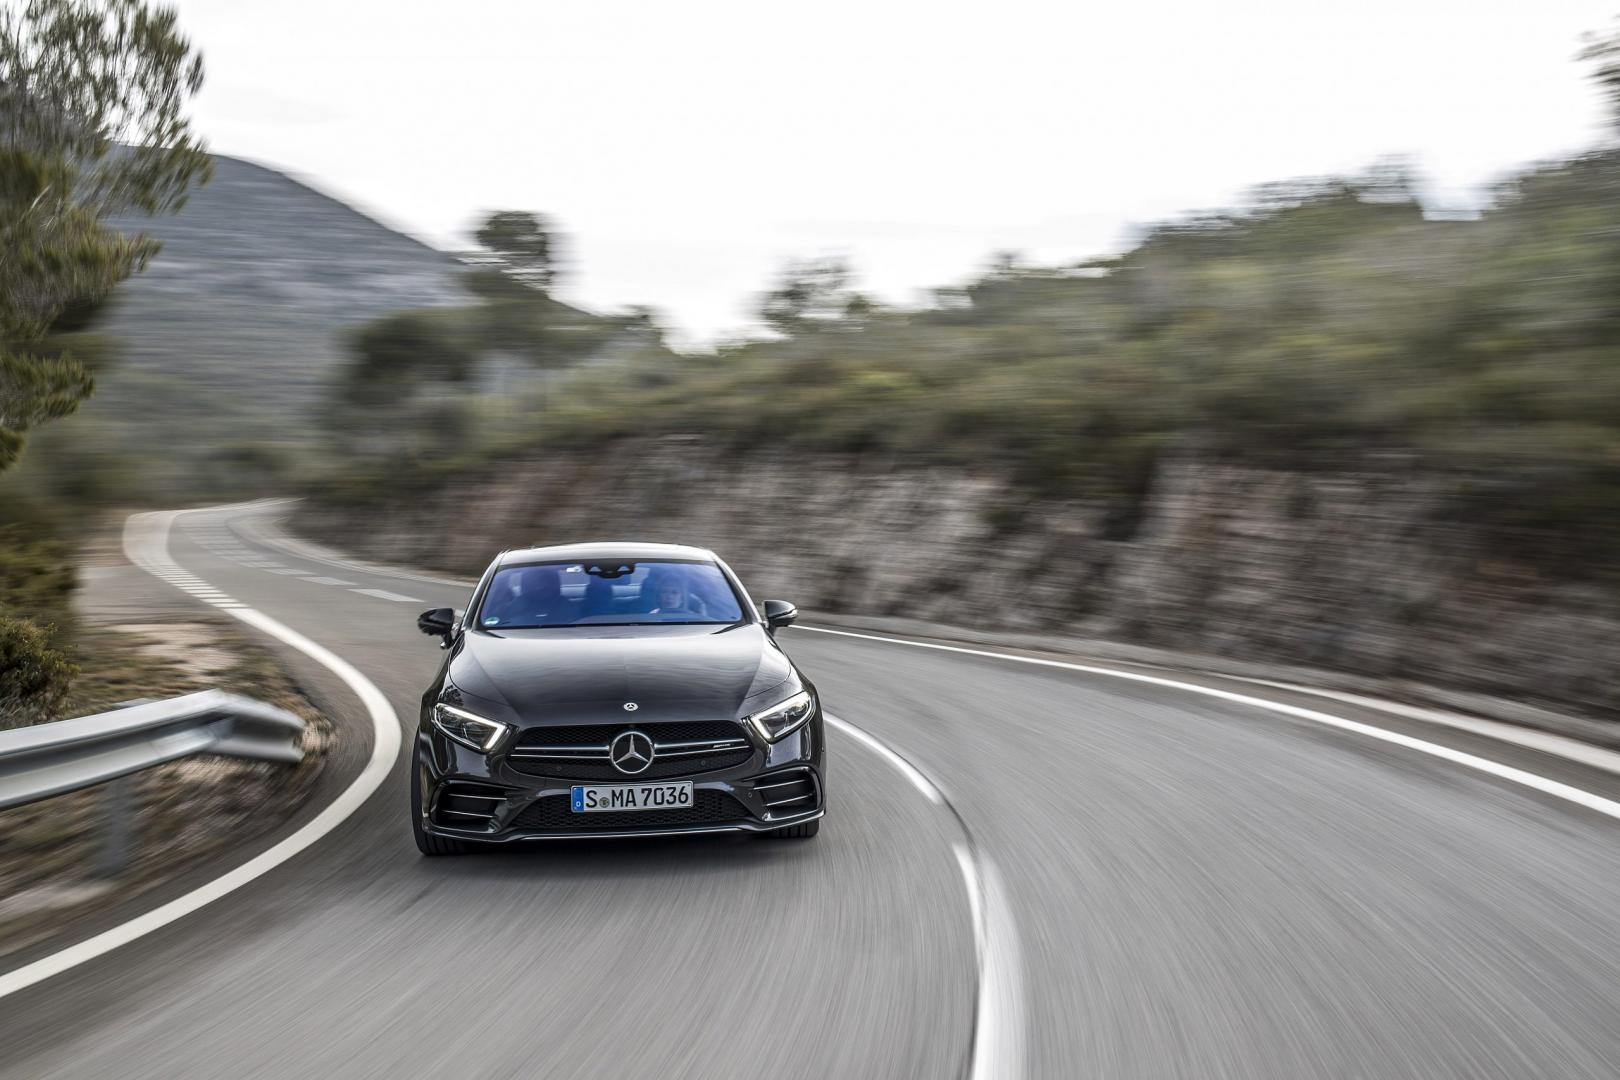 mercedes-amg-cls-53-4matic-test-2018- CLS 53